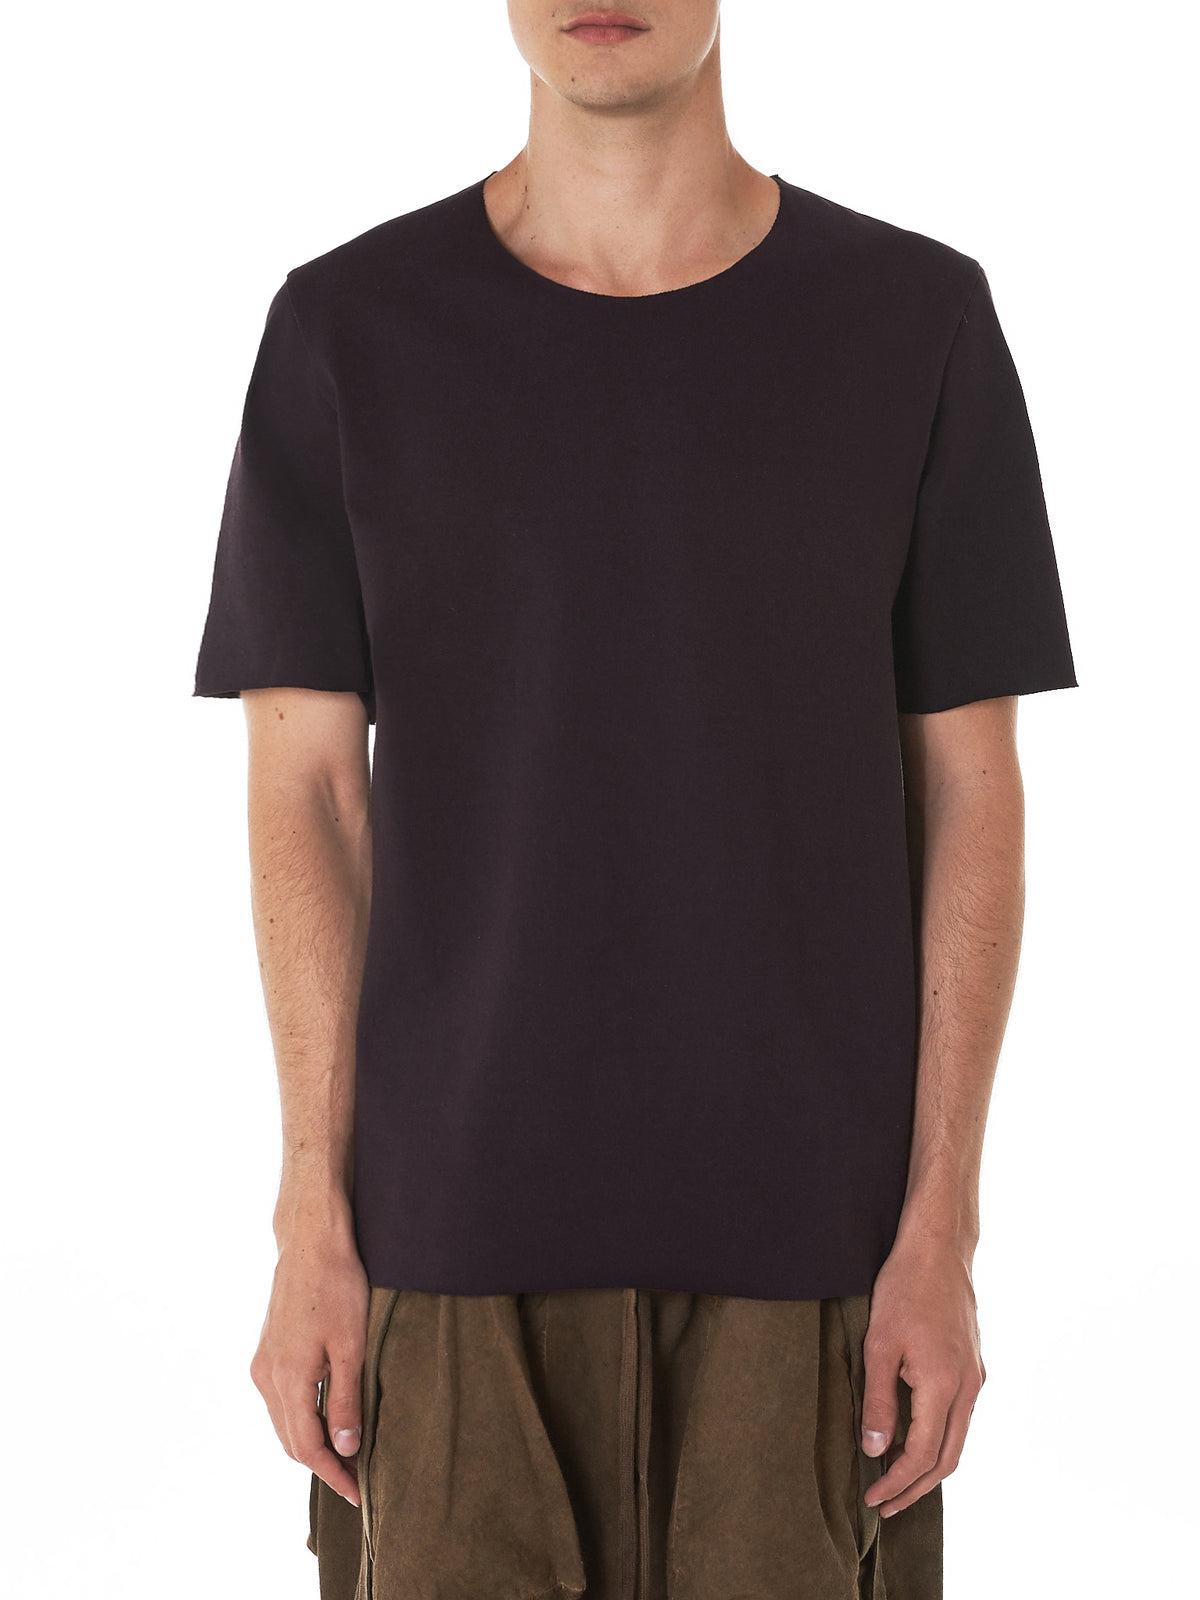 Scar-Stitched Tee (242-PURPLE)